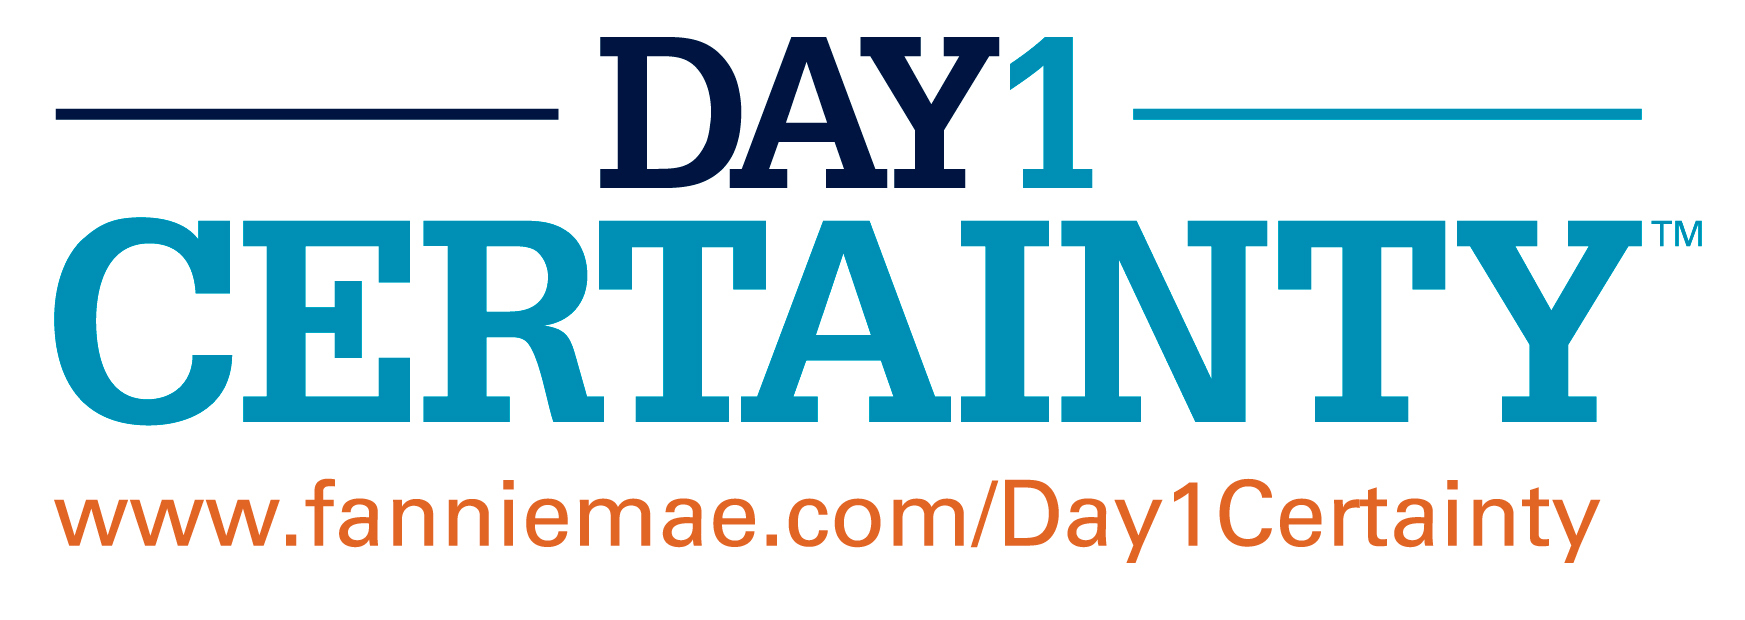 Factual Data® Announces Day 1 Certainty™ from Fannie Mae Services ...